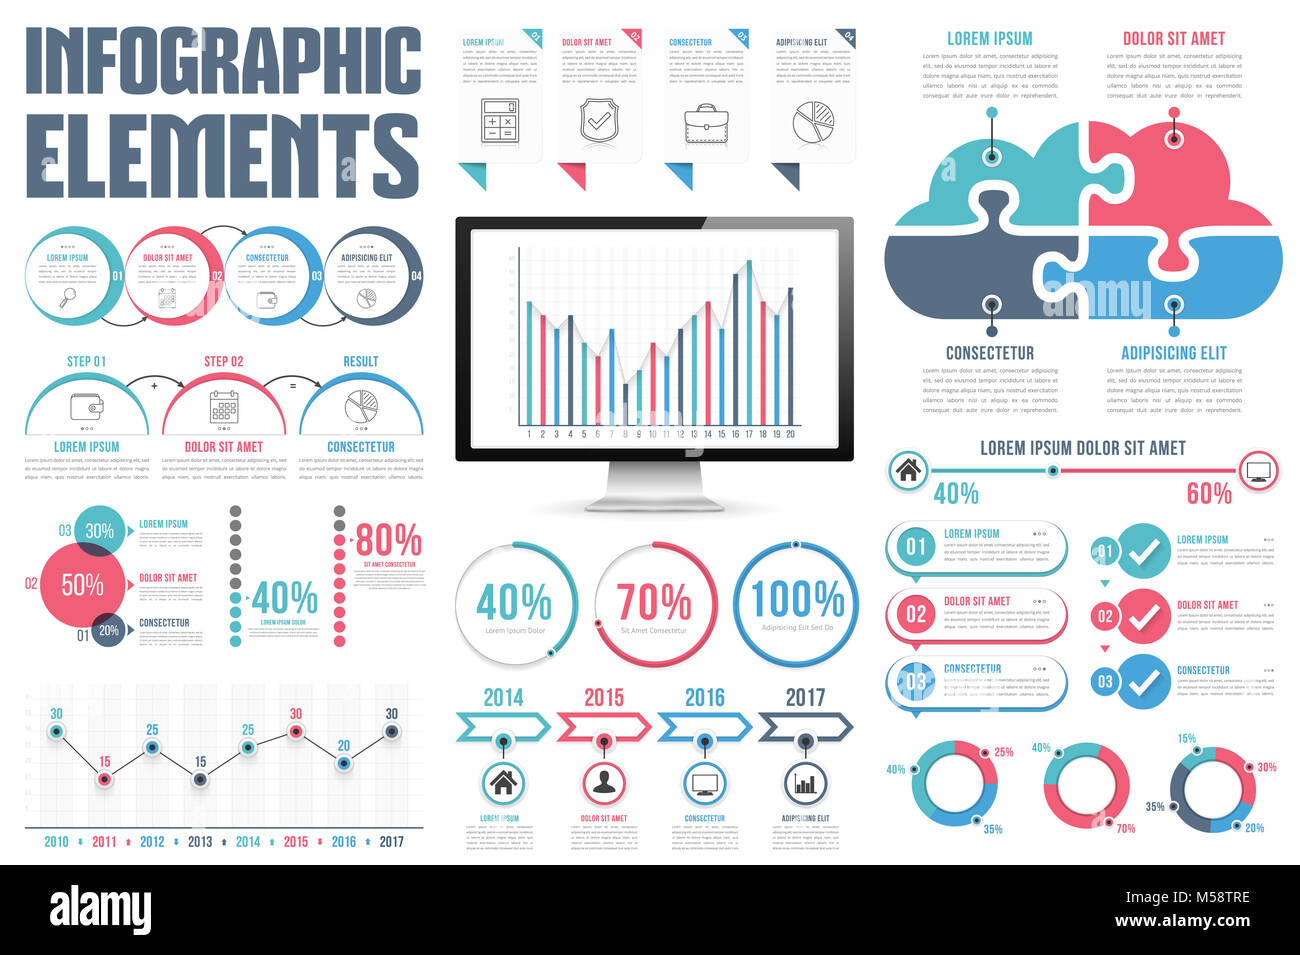 Infographic elements process infographics percents bar chart infographic elements process infographics percents bar chart and line chart steps options timeline infographics pie chart puzzle cloud vecto nvjuhfo Gallery